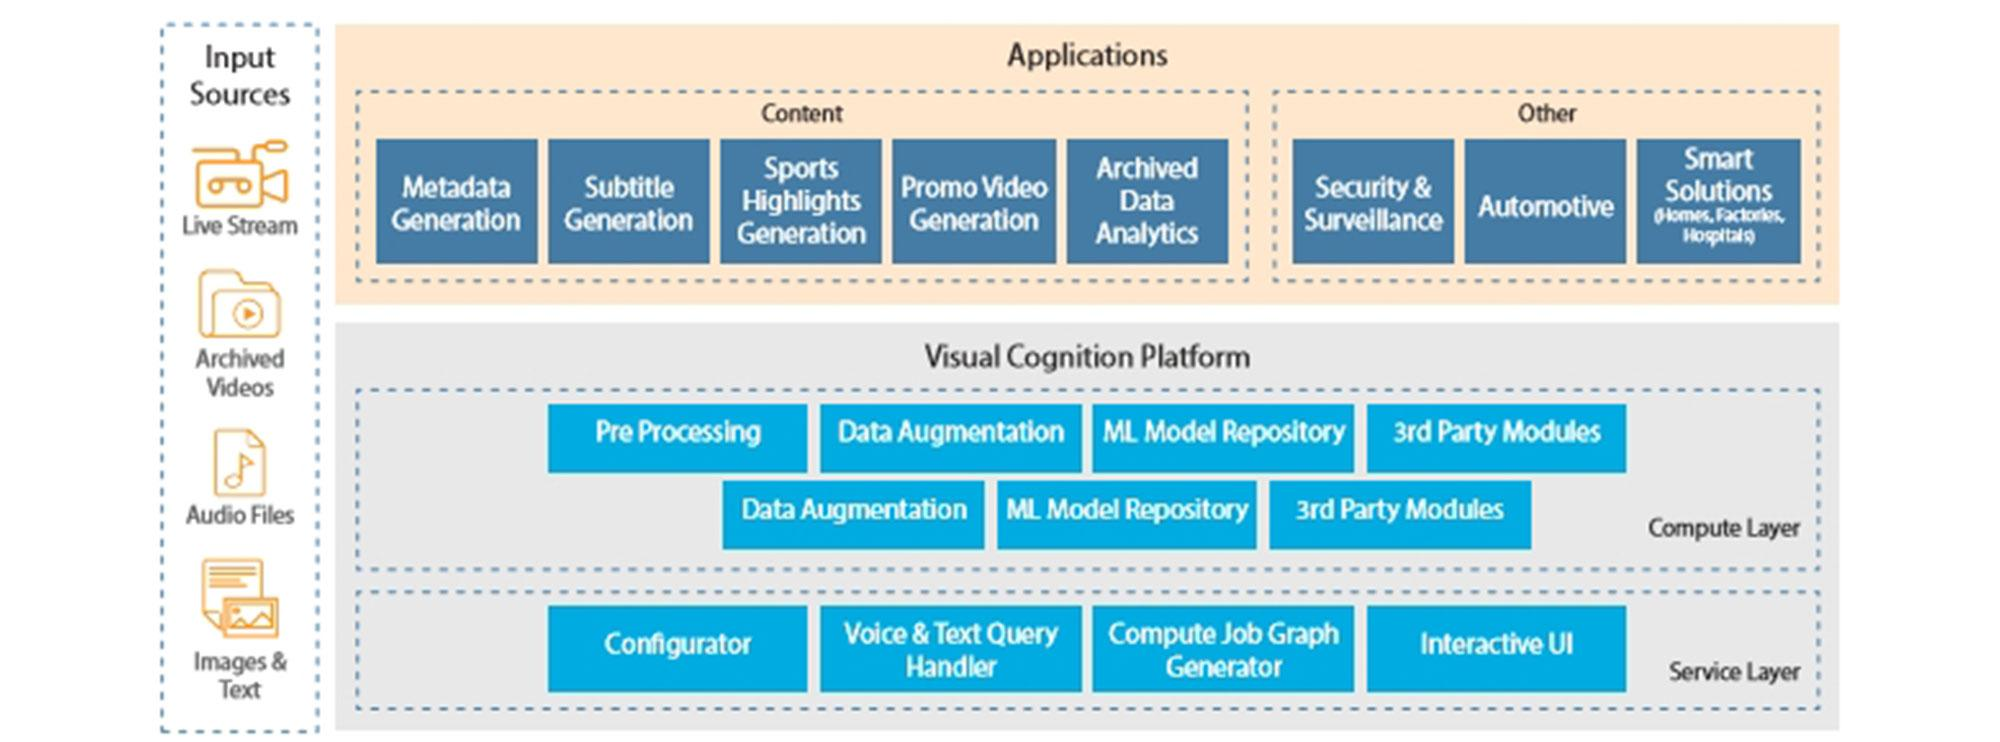 Cognitive Video Services